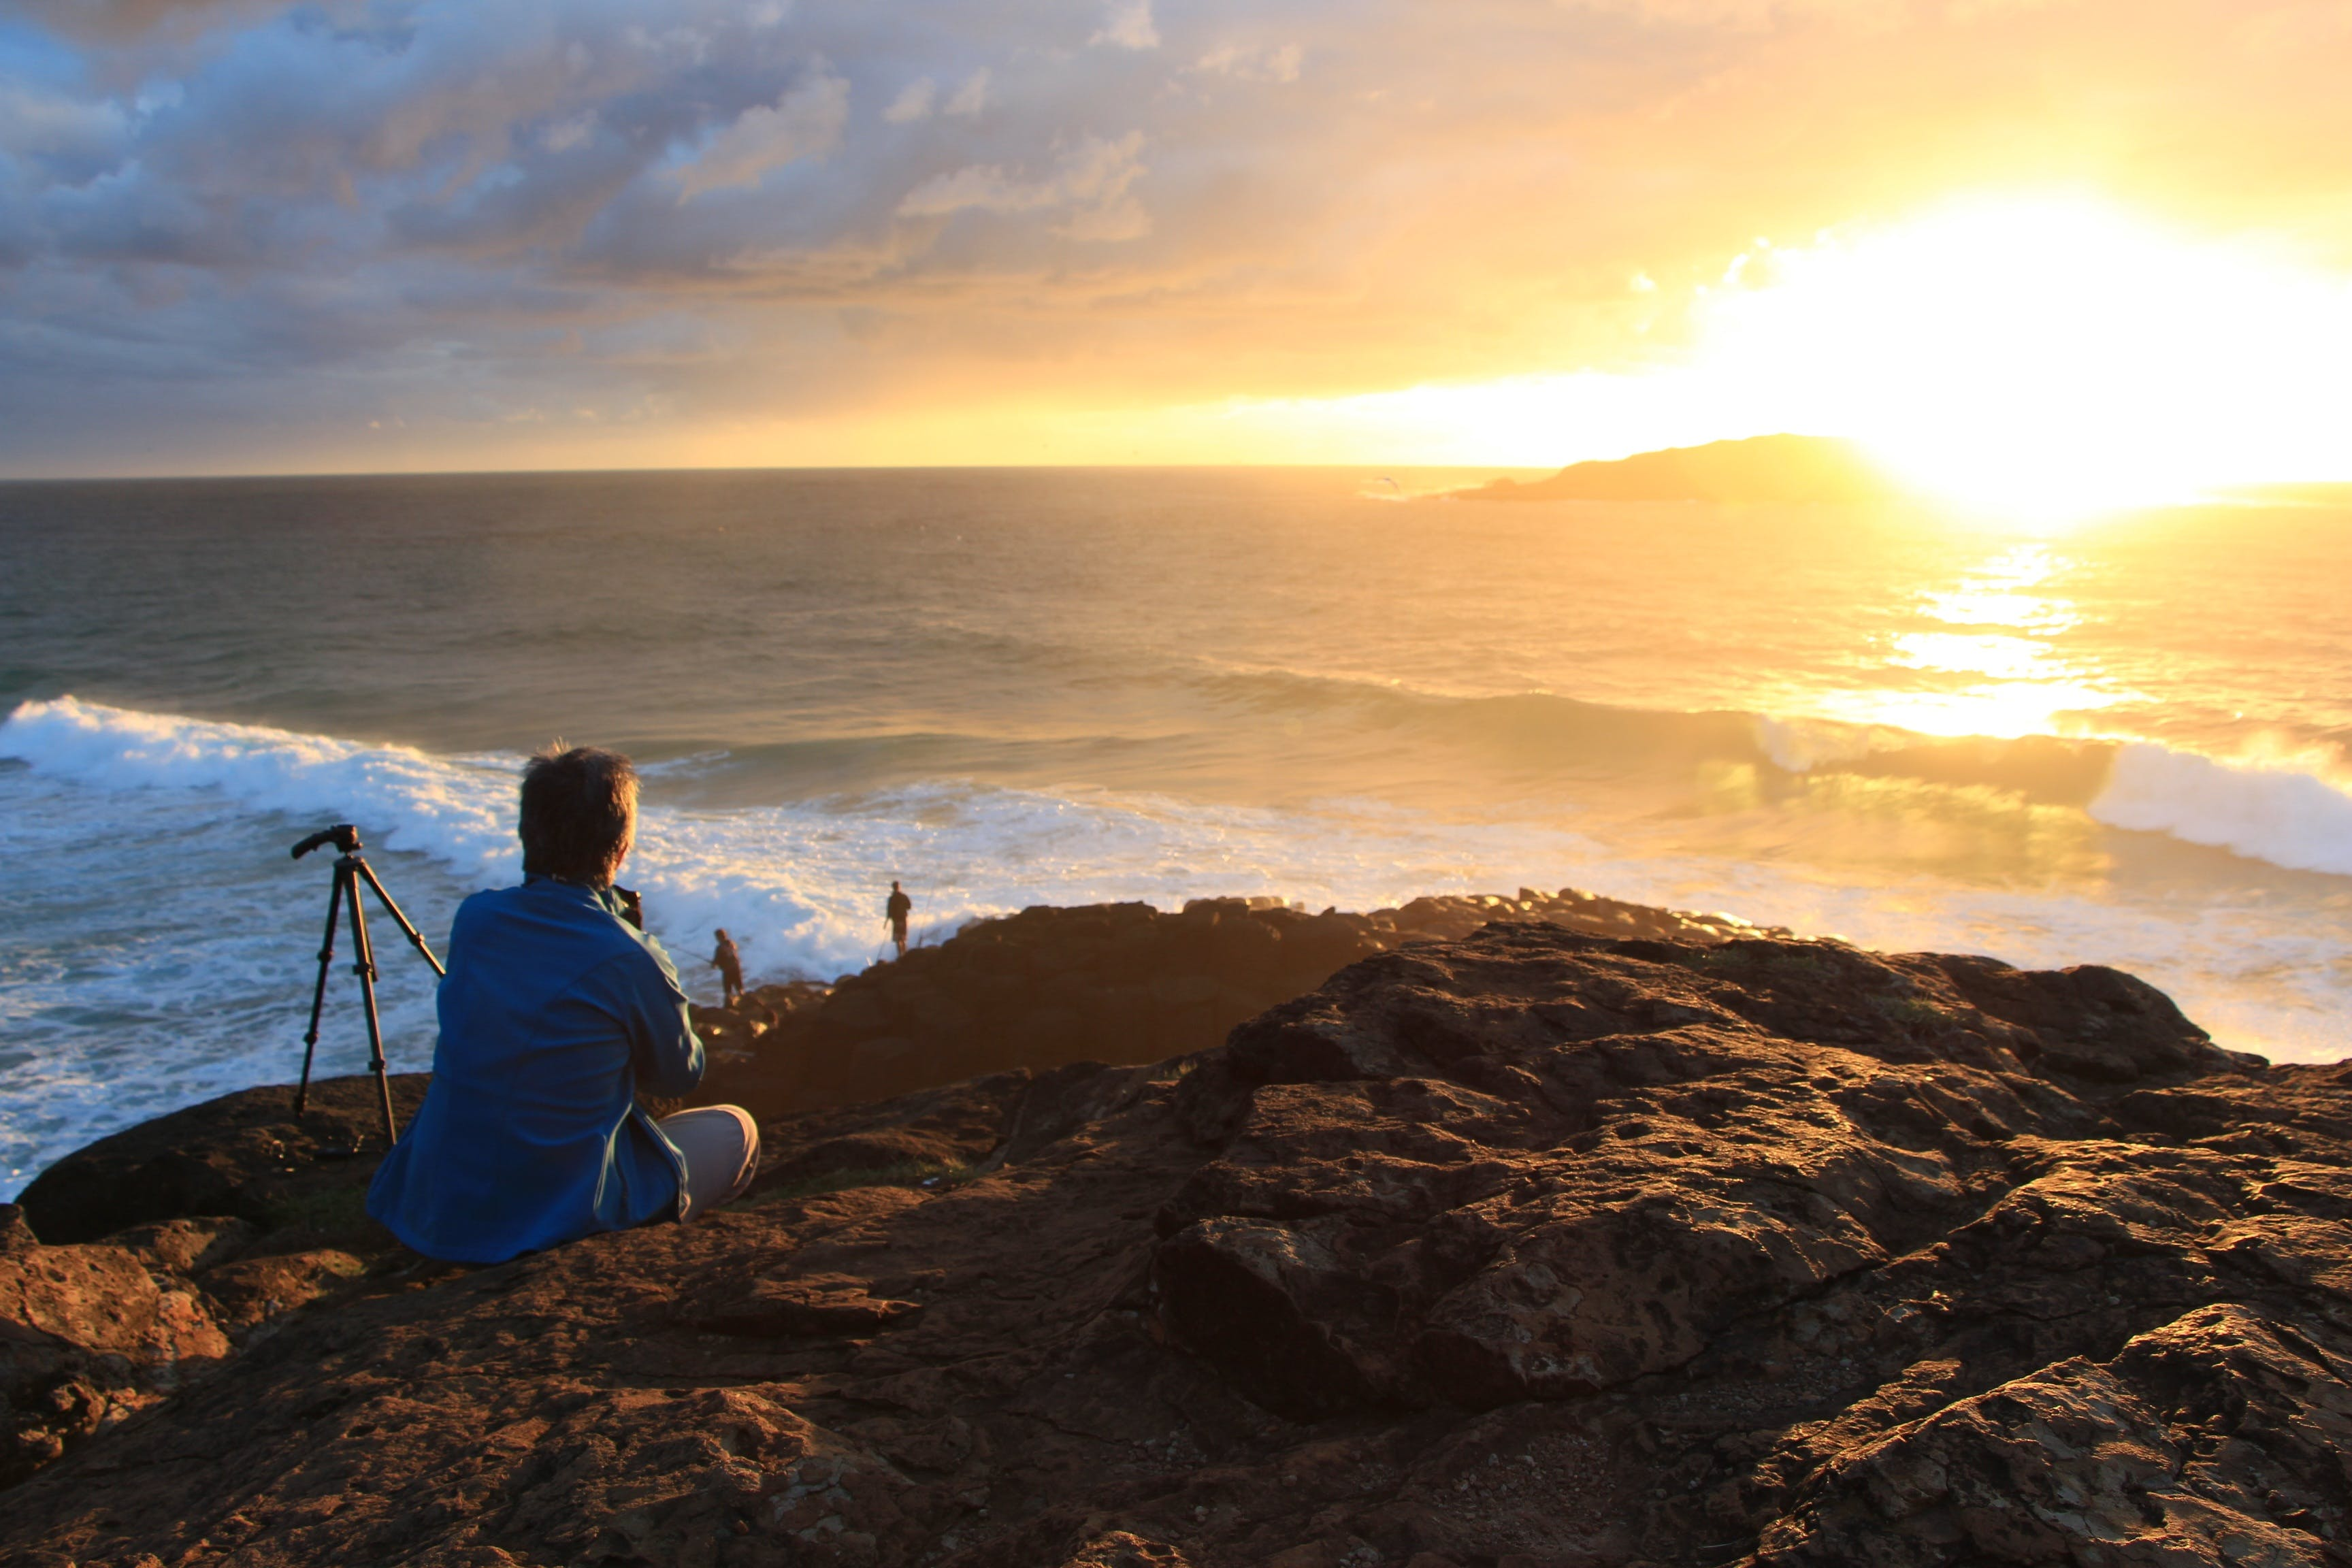 Person Sitting on Cliff Watching Sunset